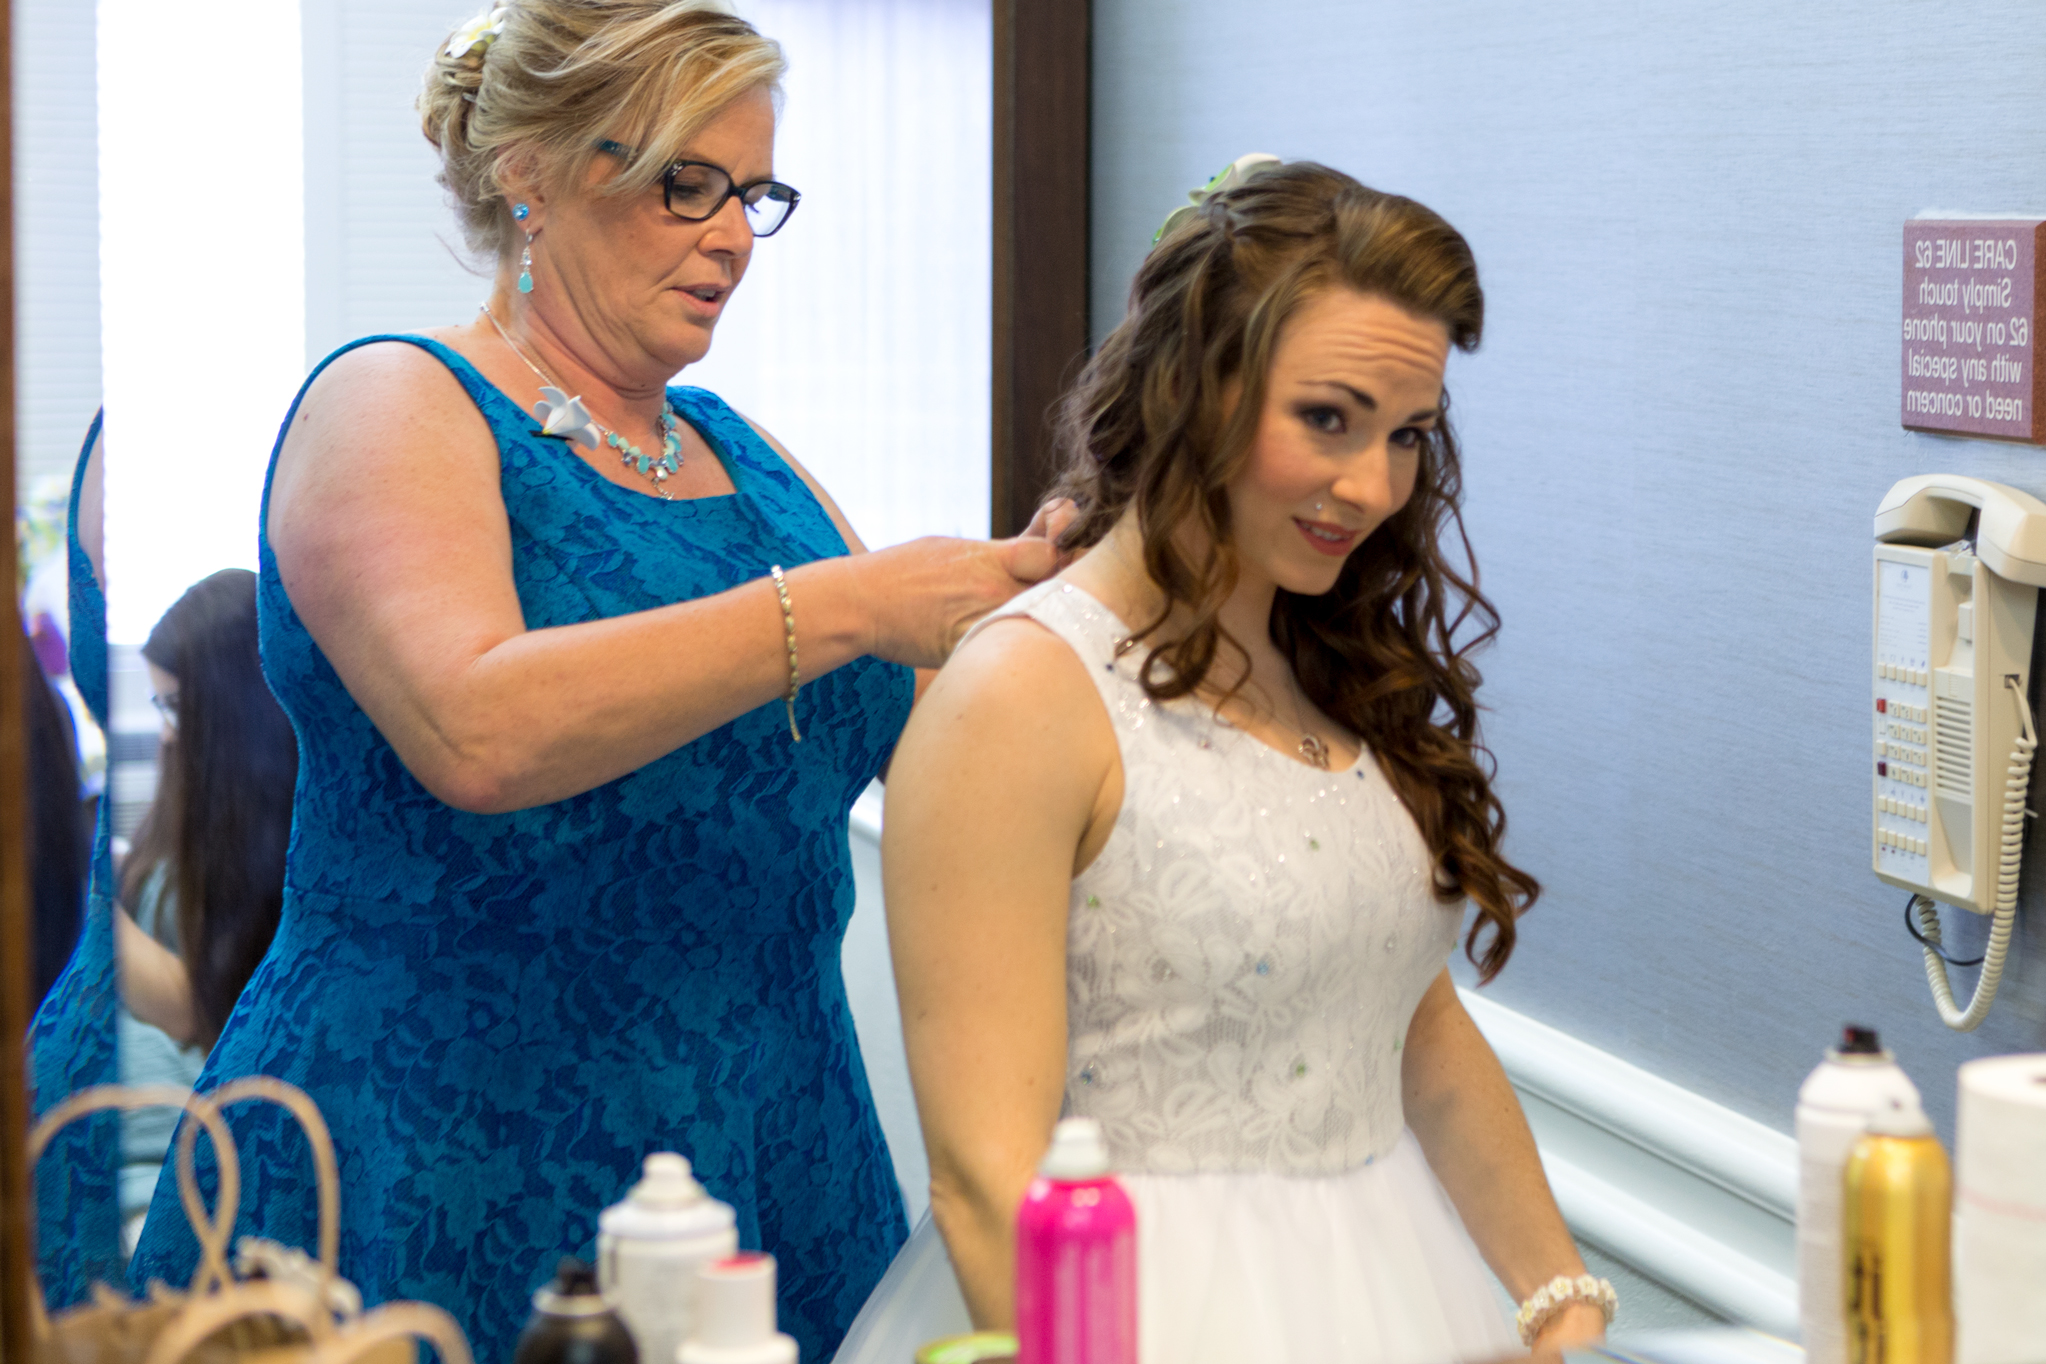 bride_getting_ready_dress_flowers_wedding_romance_2.jpg